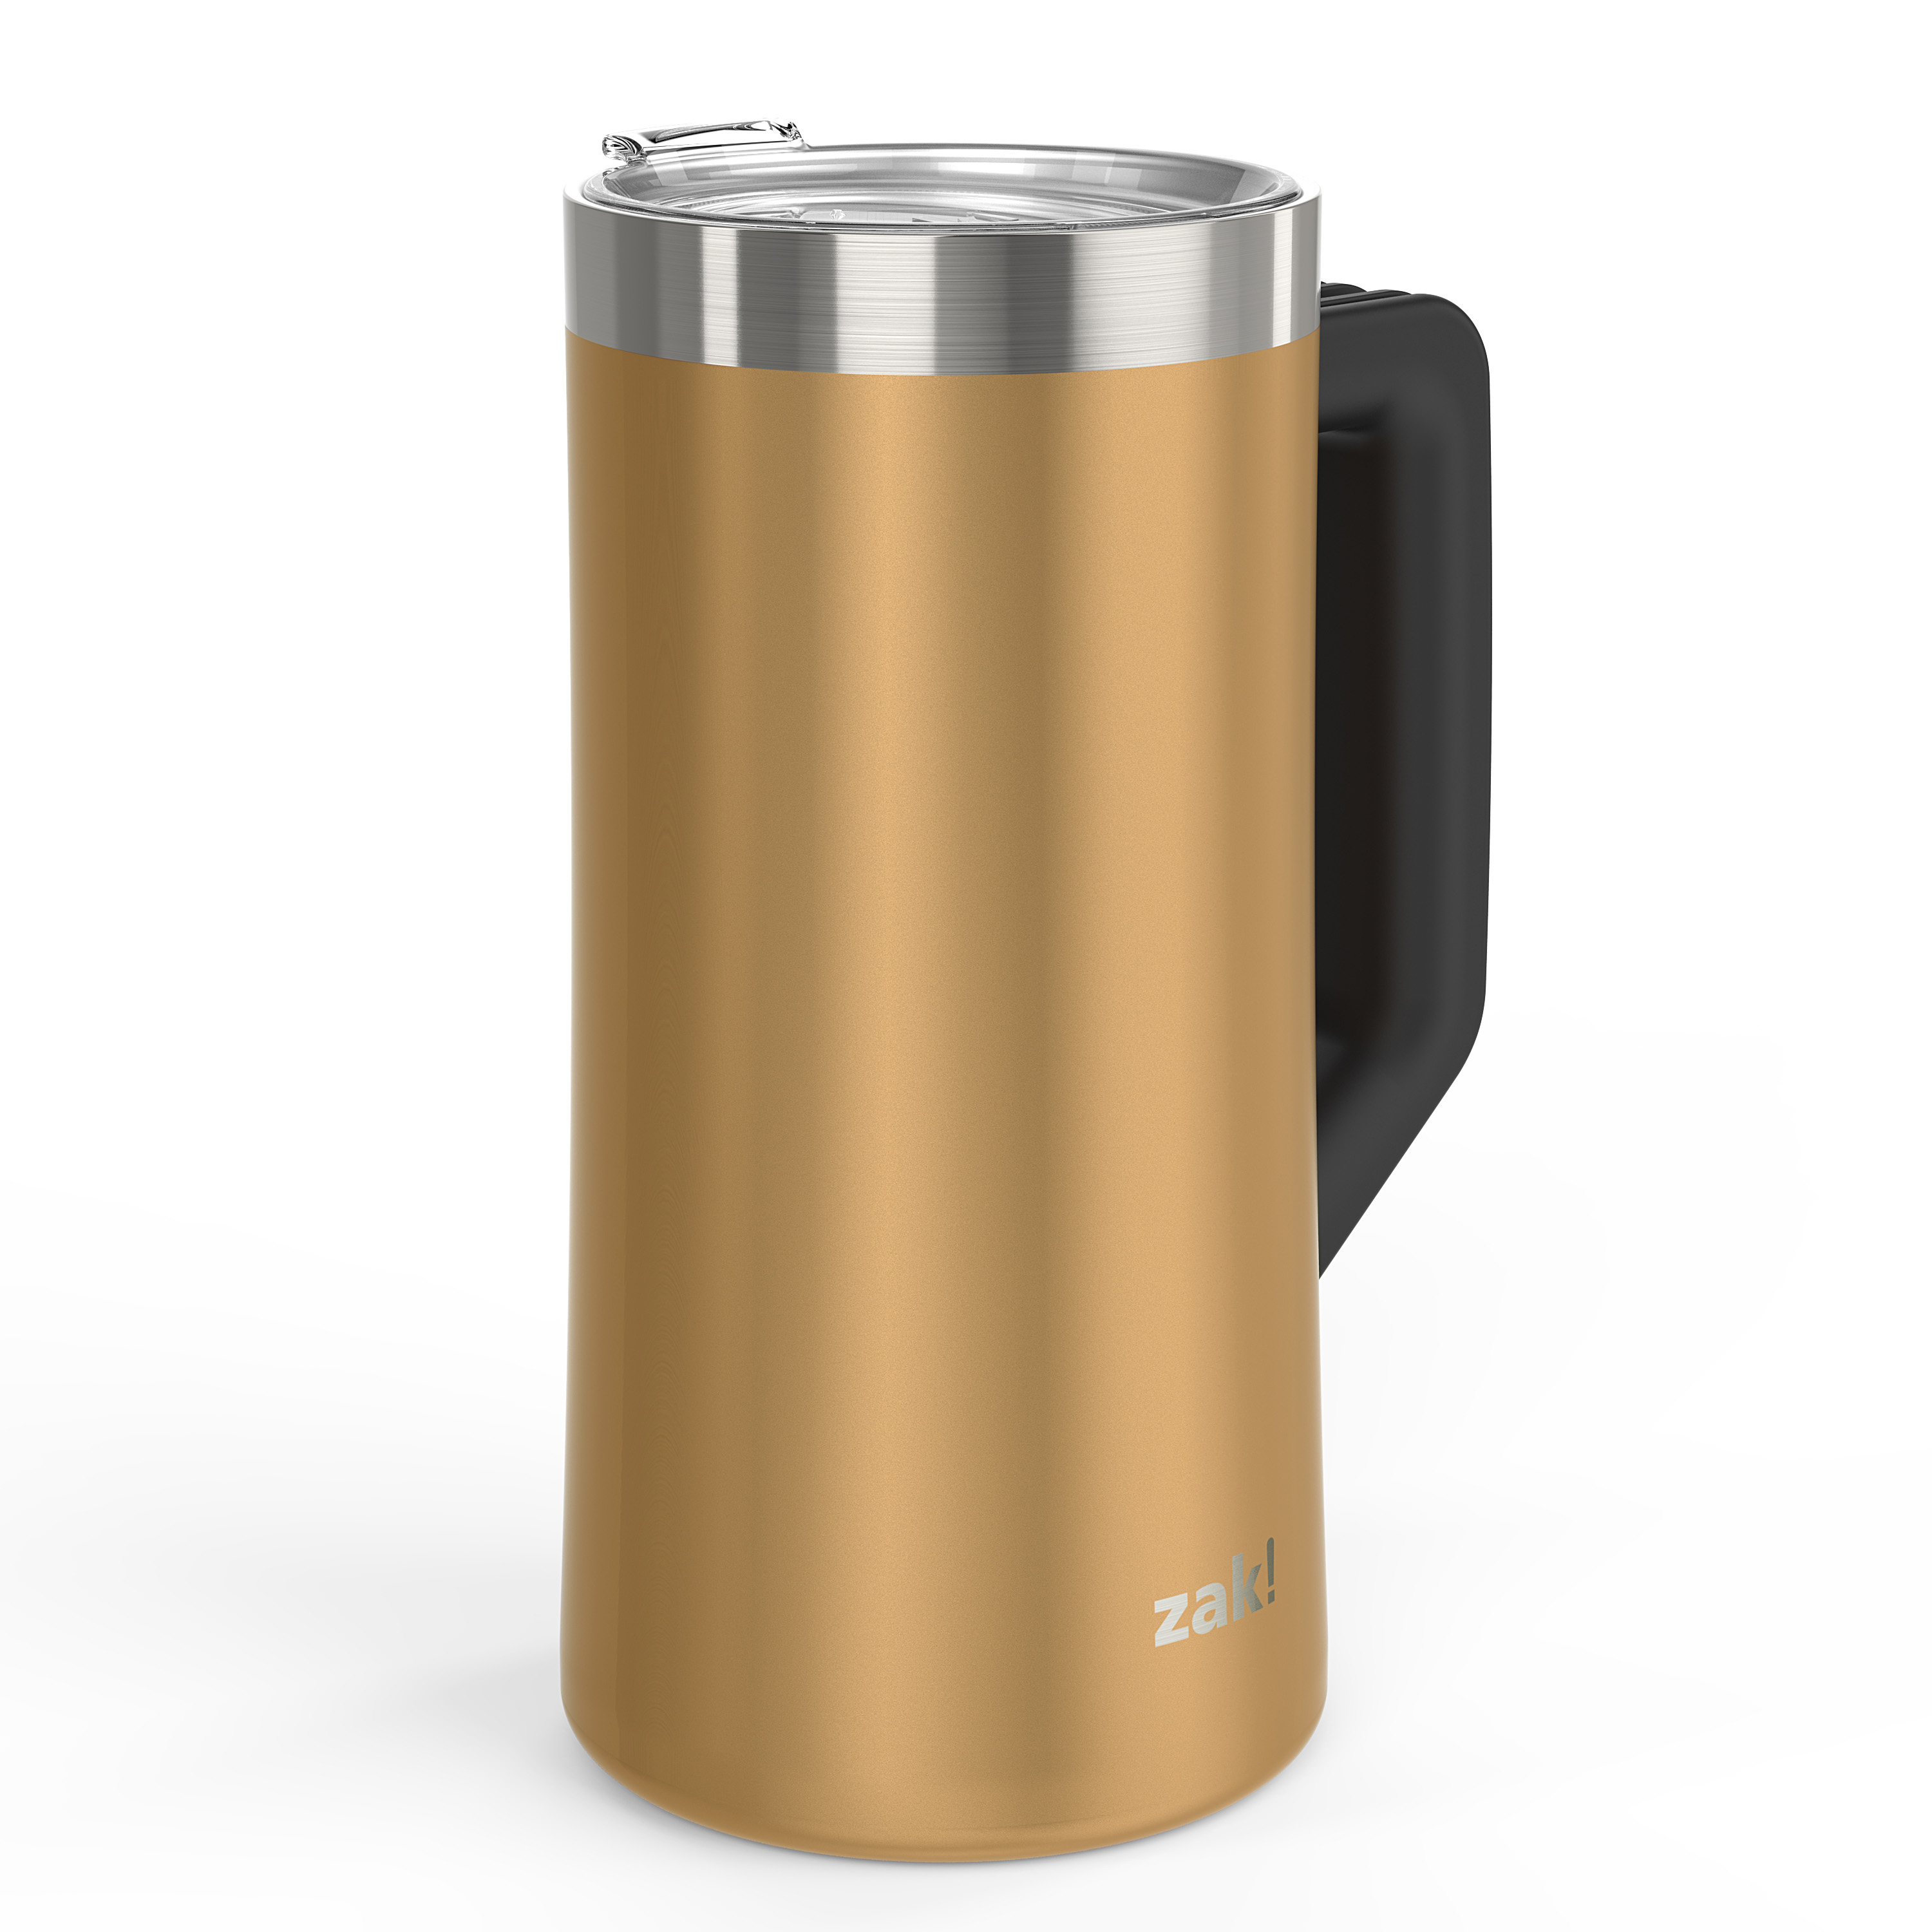 Creston 25 ounce Stainless Steel Vacuum Insulated Beer Stein, Copper slideshow image 4